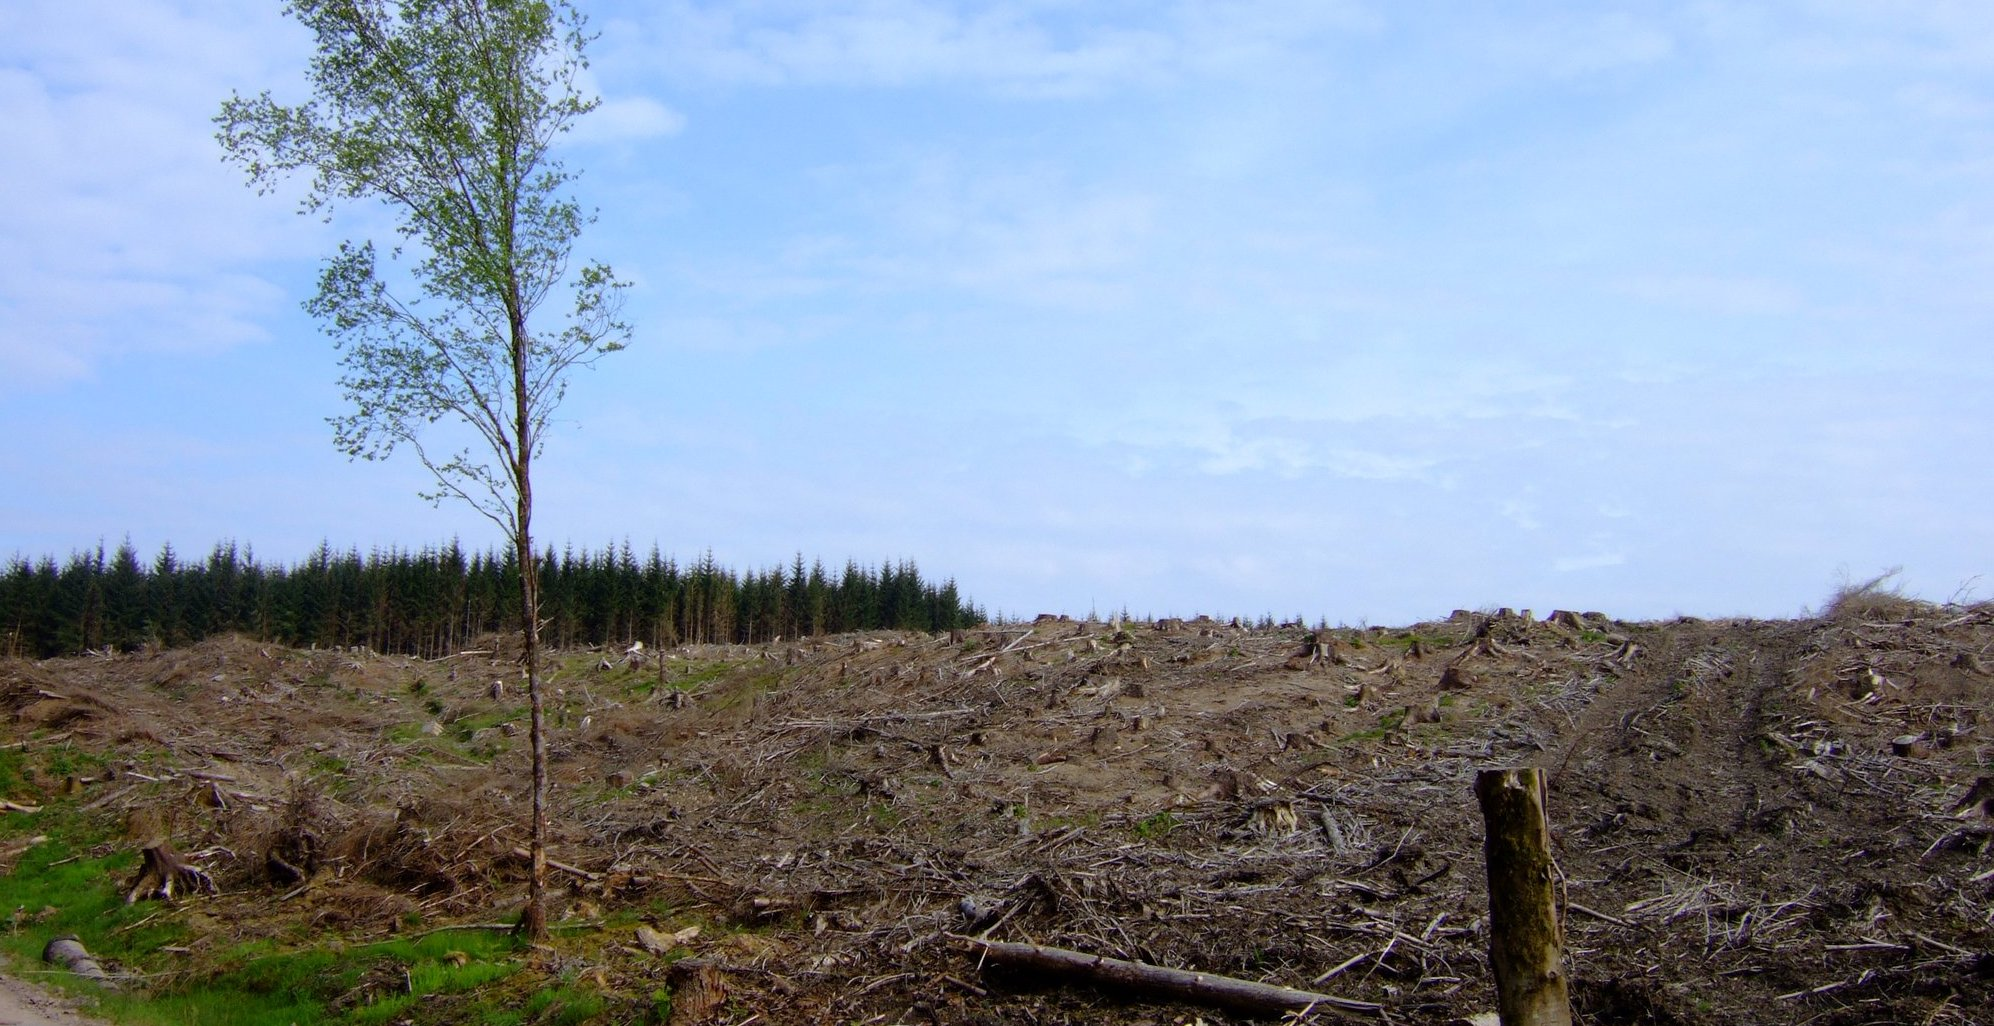 And a similar area after it has been felled and logged